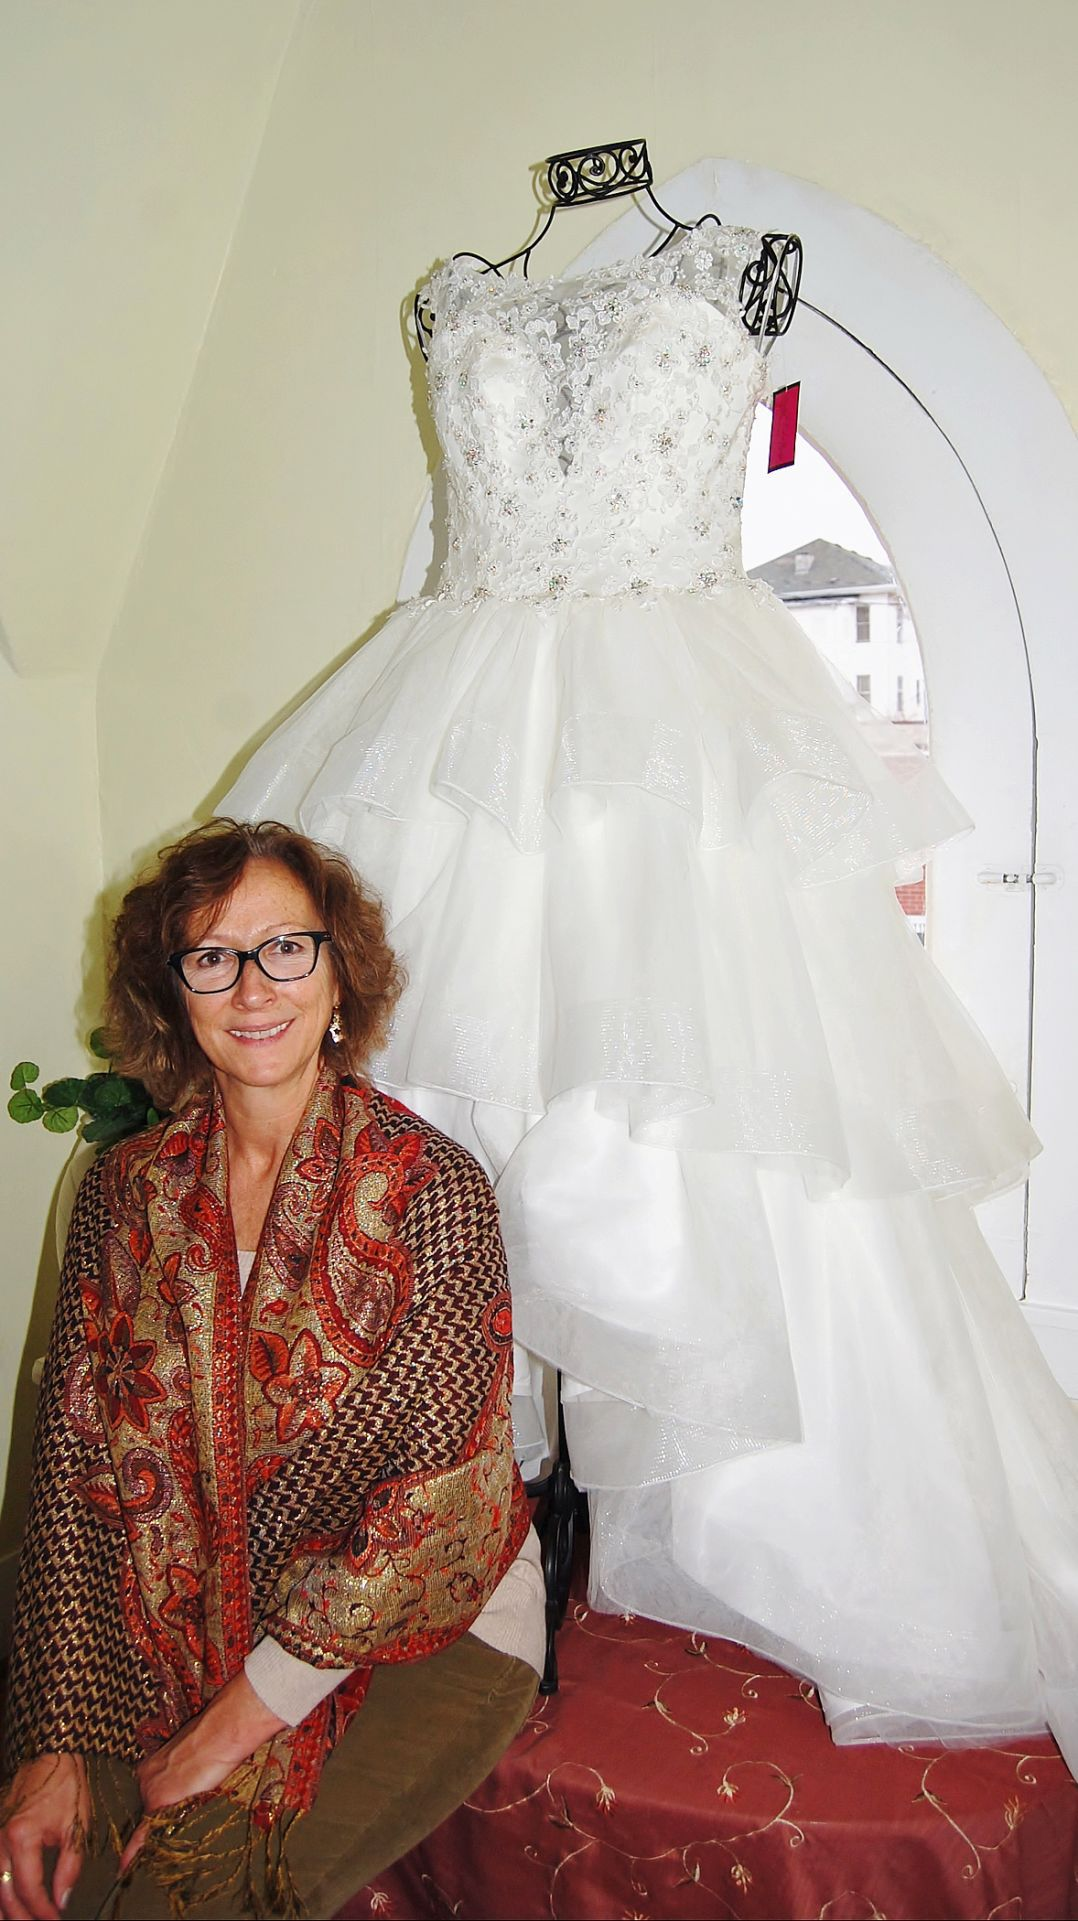 Wedding dress pop-up store latest venture at Three Gables Decor ...